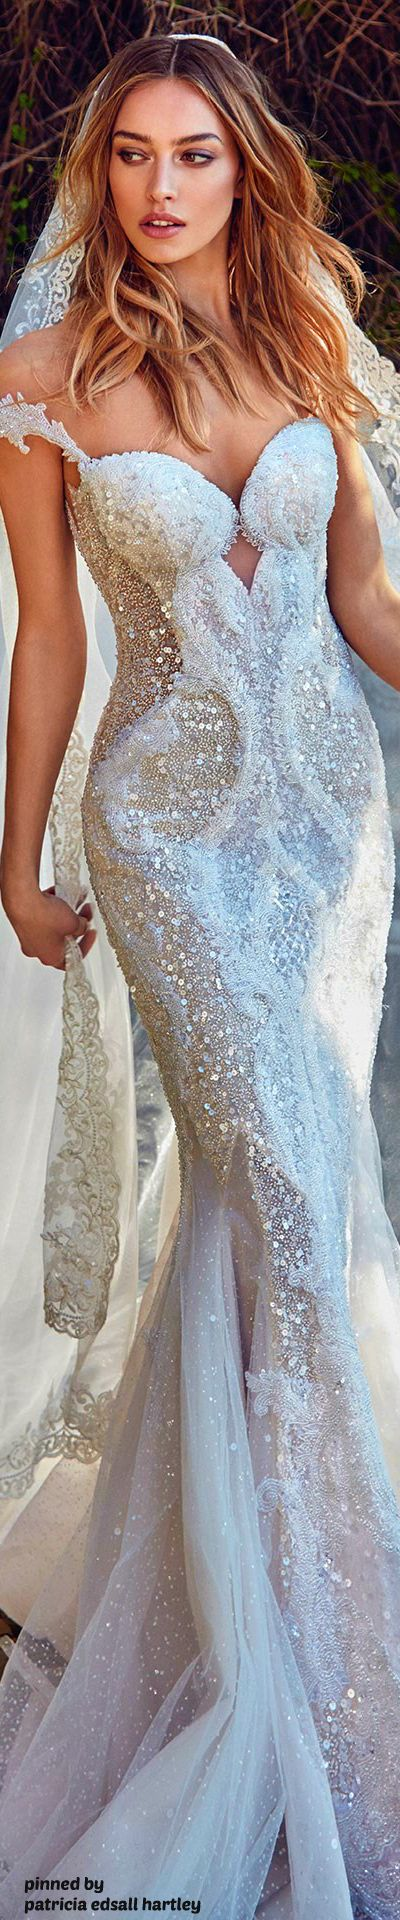 There\'s Just Something About These Sequins Wedding Gowns - BridalPulse